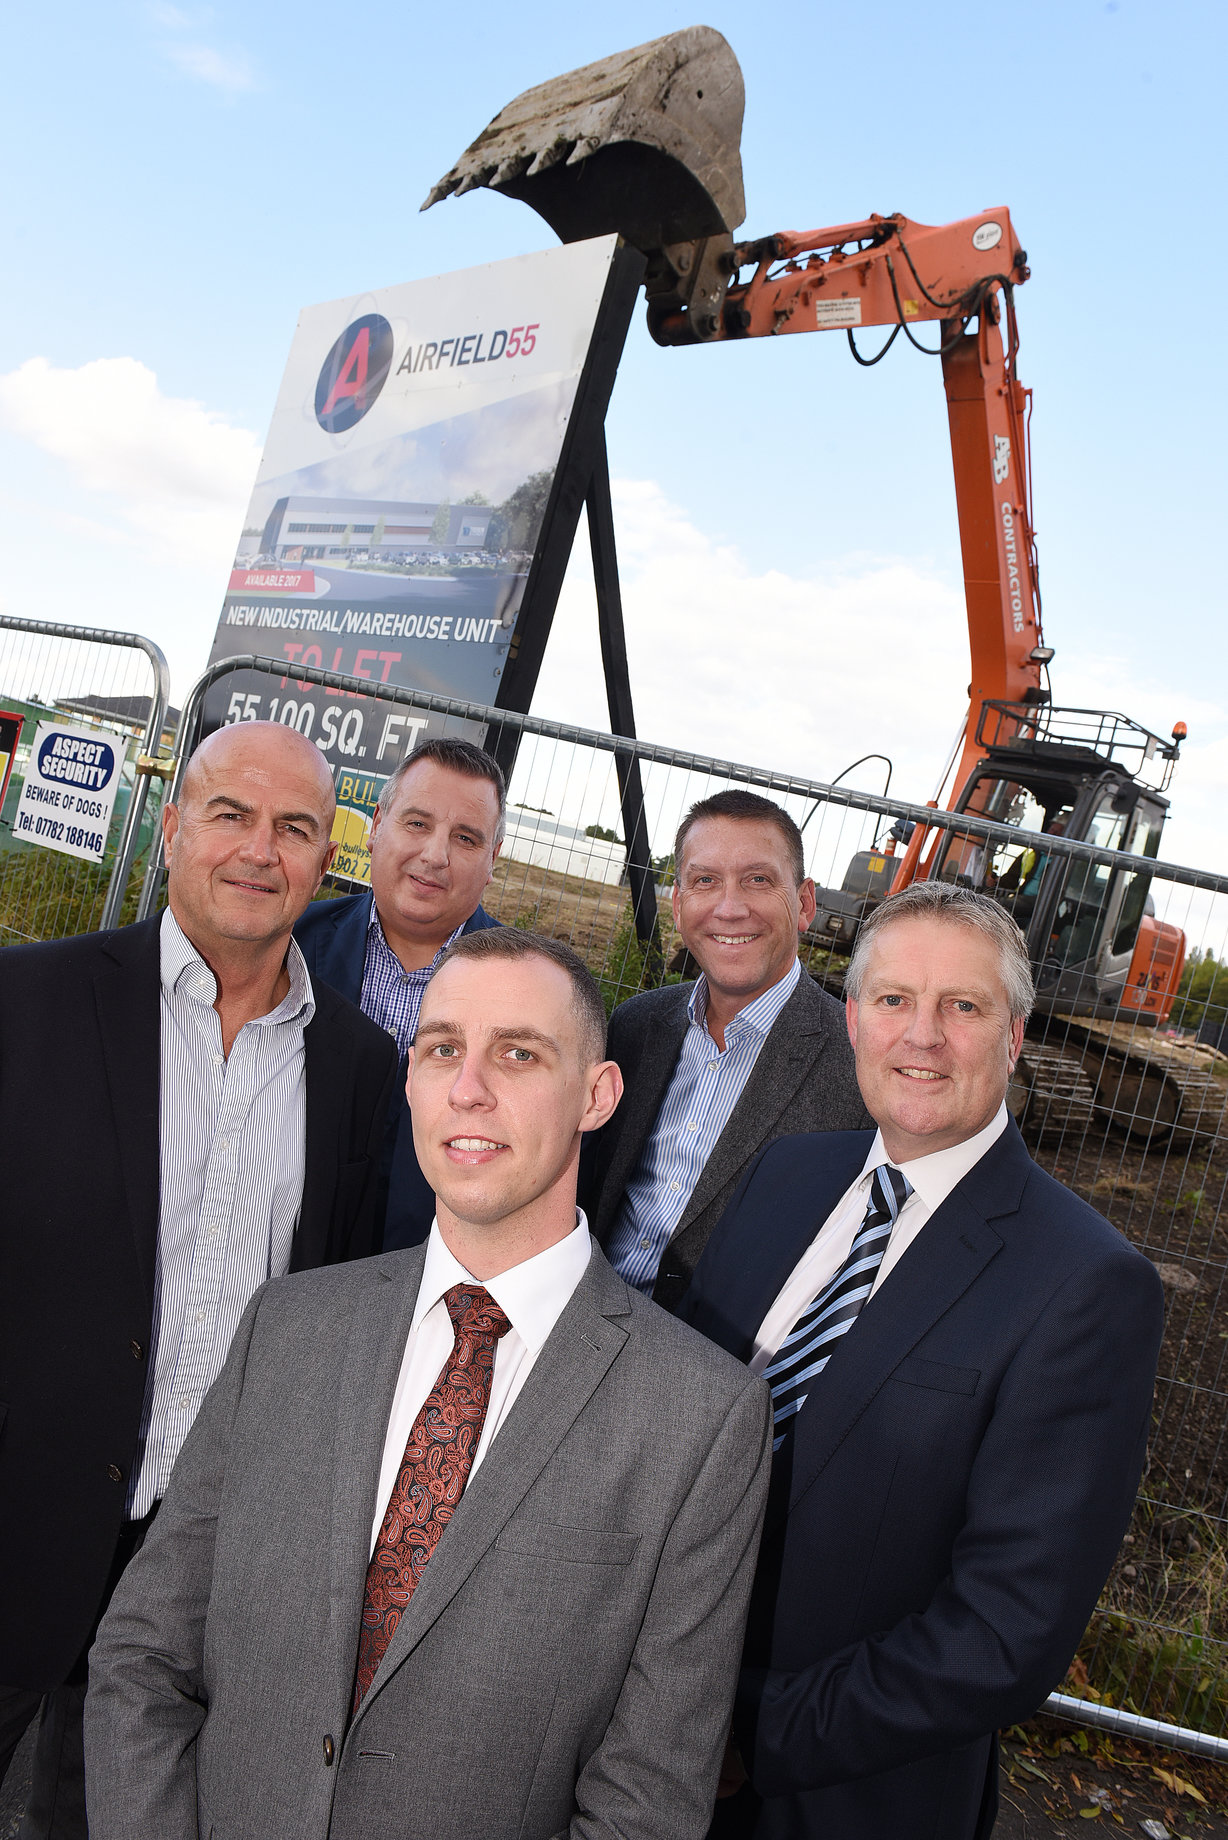 Airfield 55, Aldridge – Speculative Industrial Development Starts on Site